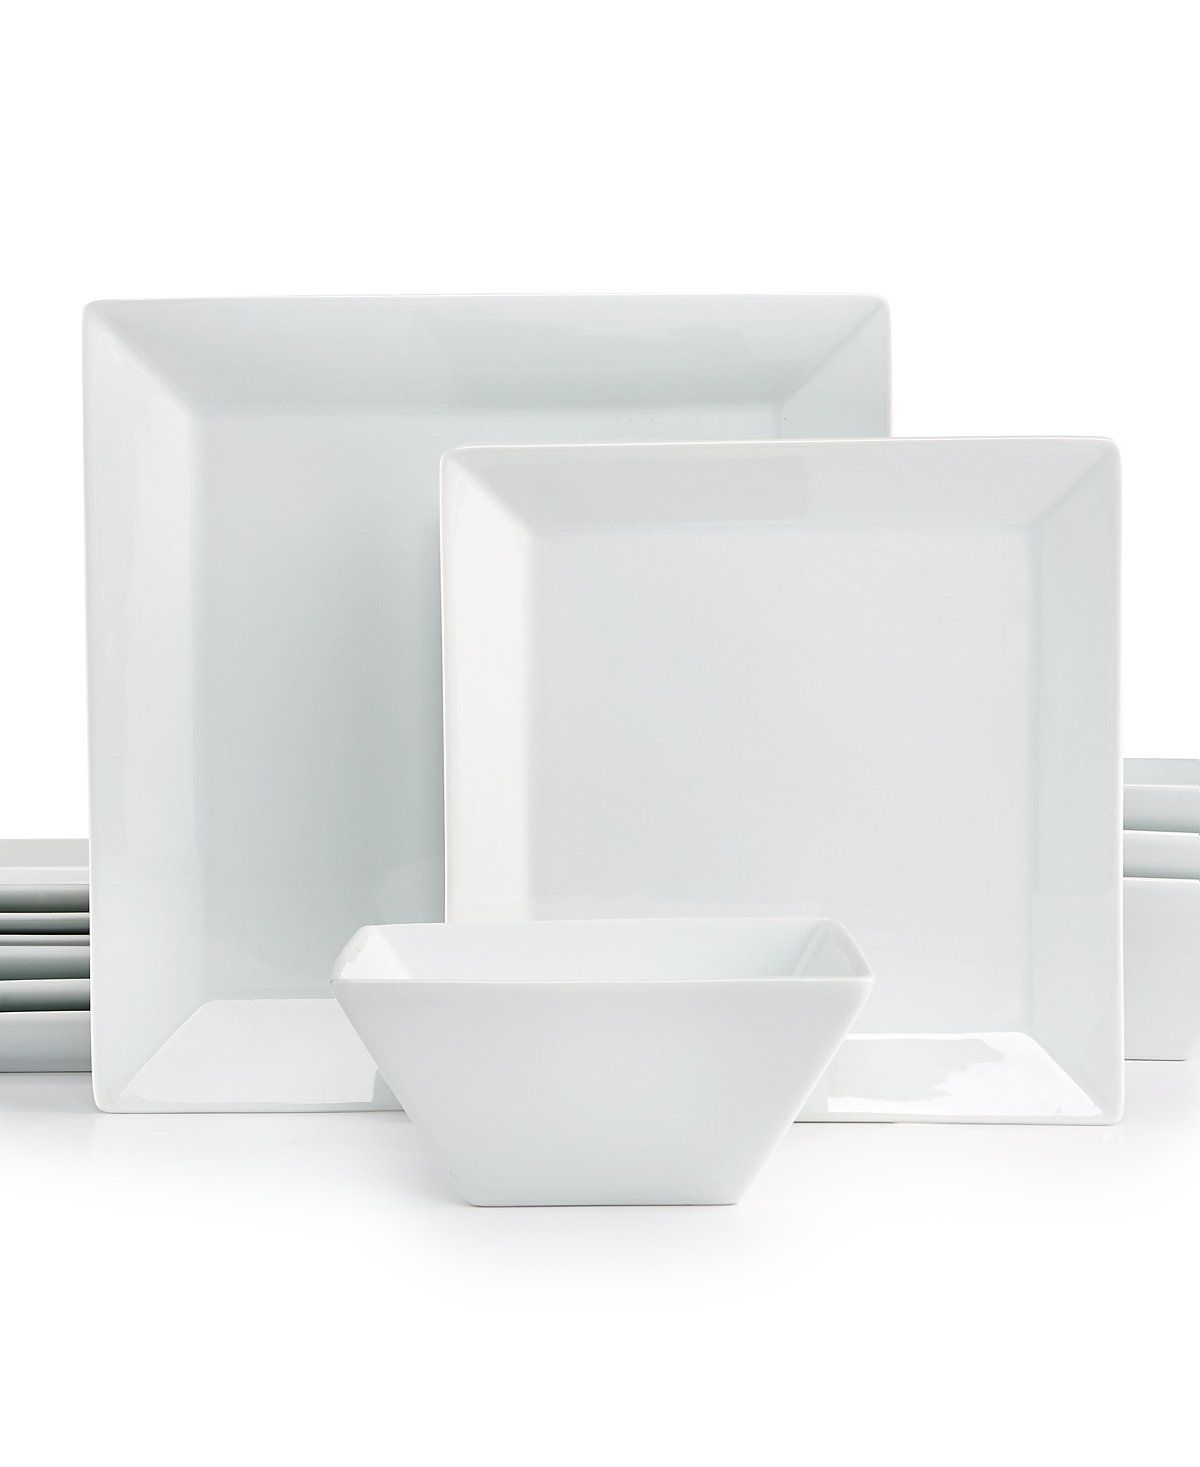 12 Piece Square Set Created For Macys In 2019 Plan On Purchasing